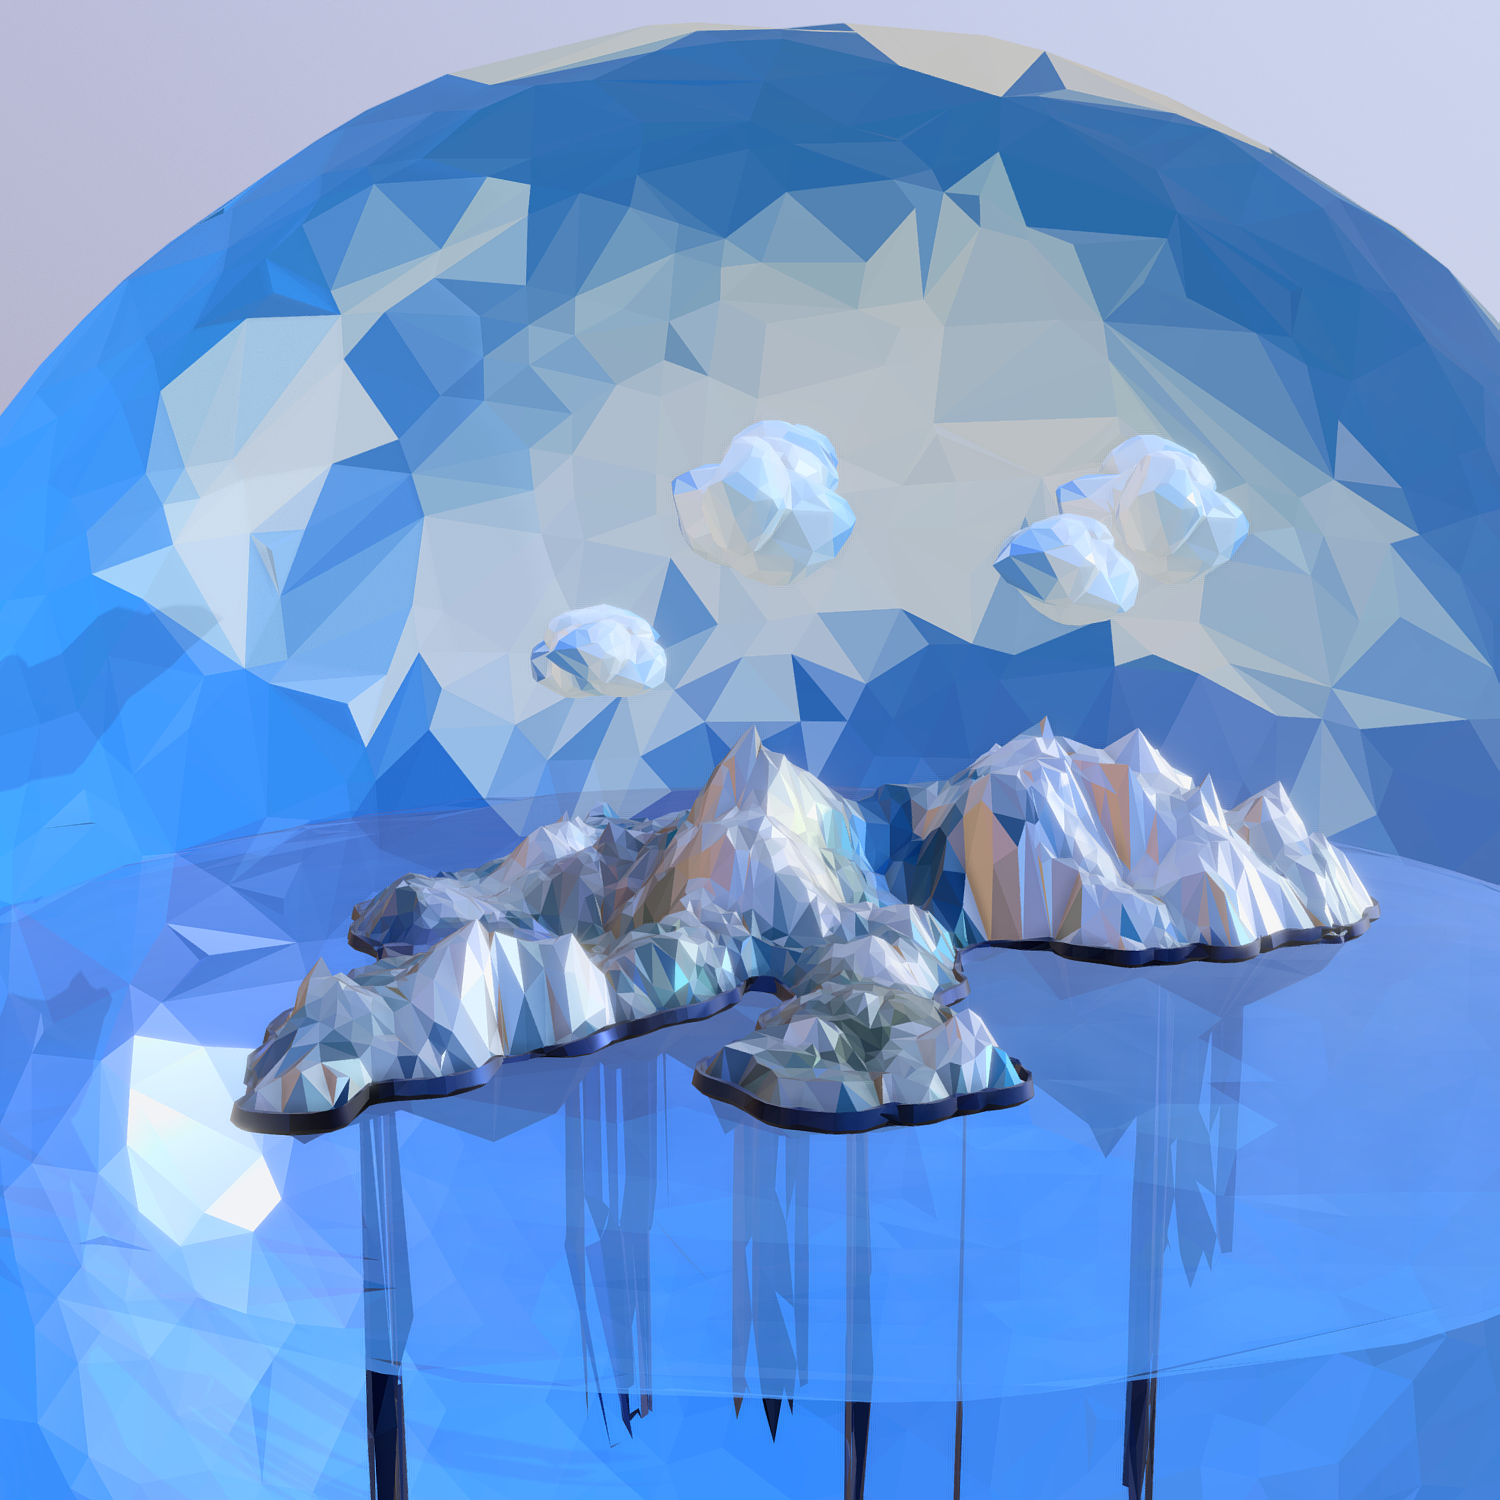 low polygon art snow island mountain waterfall 3d model 3ds max fbx ma mb obj 269708